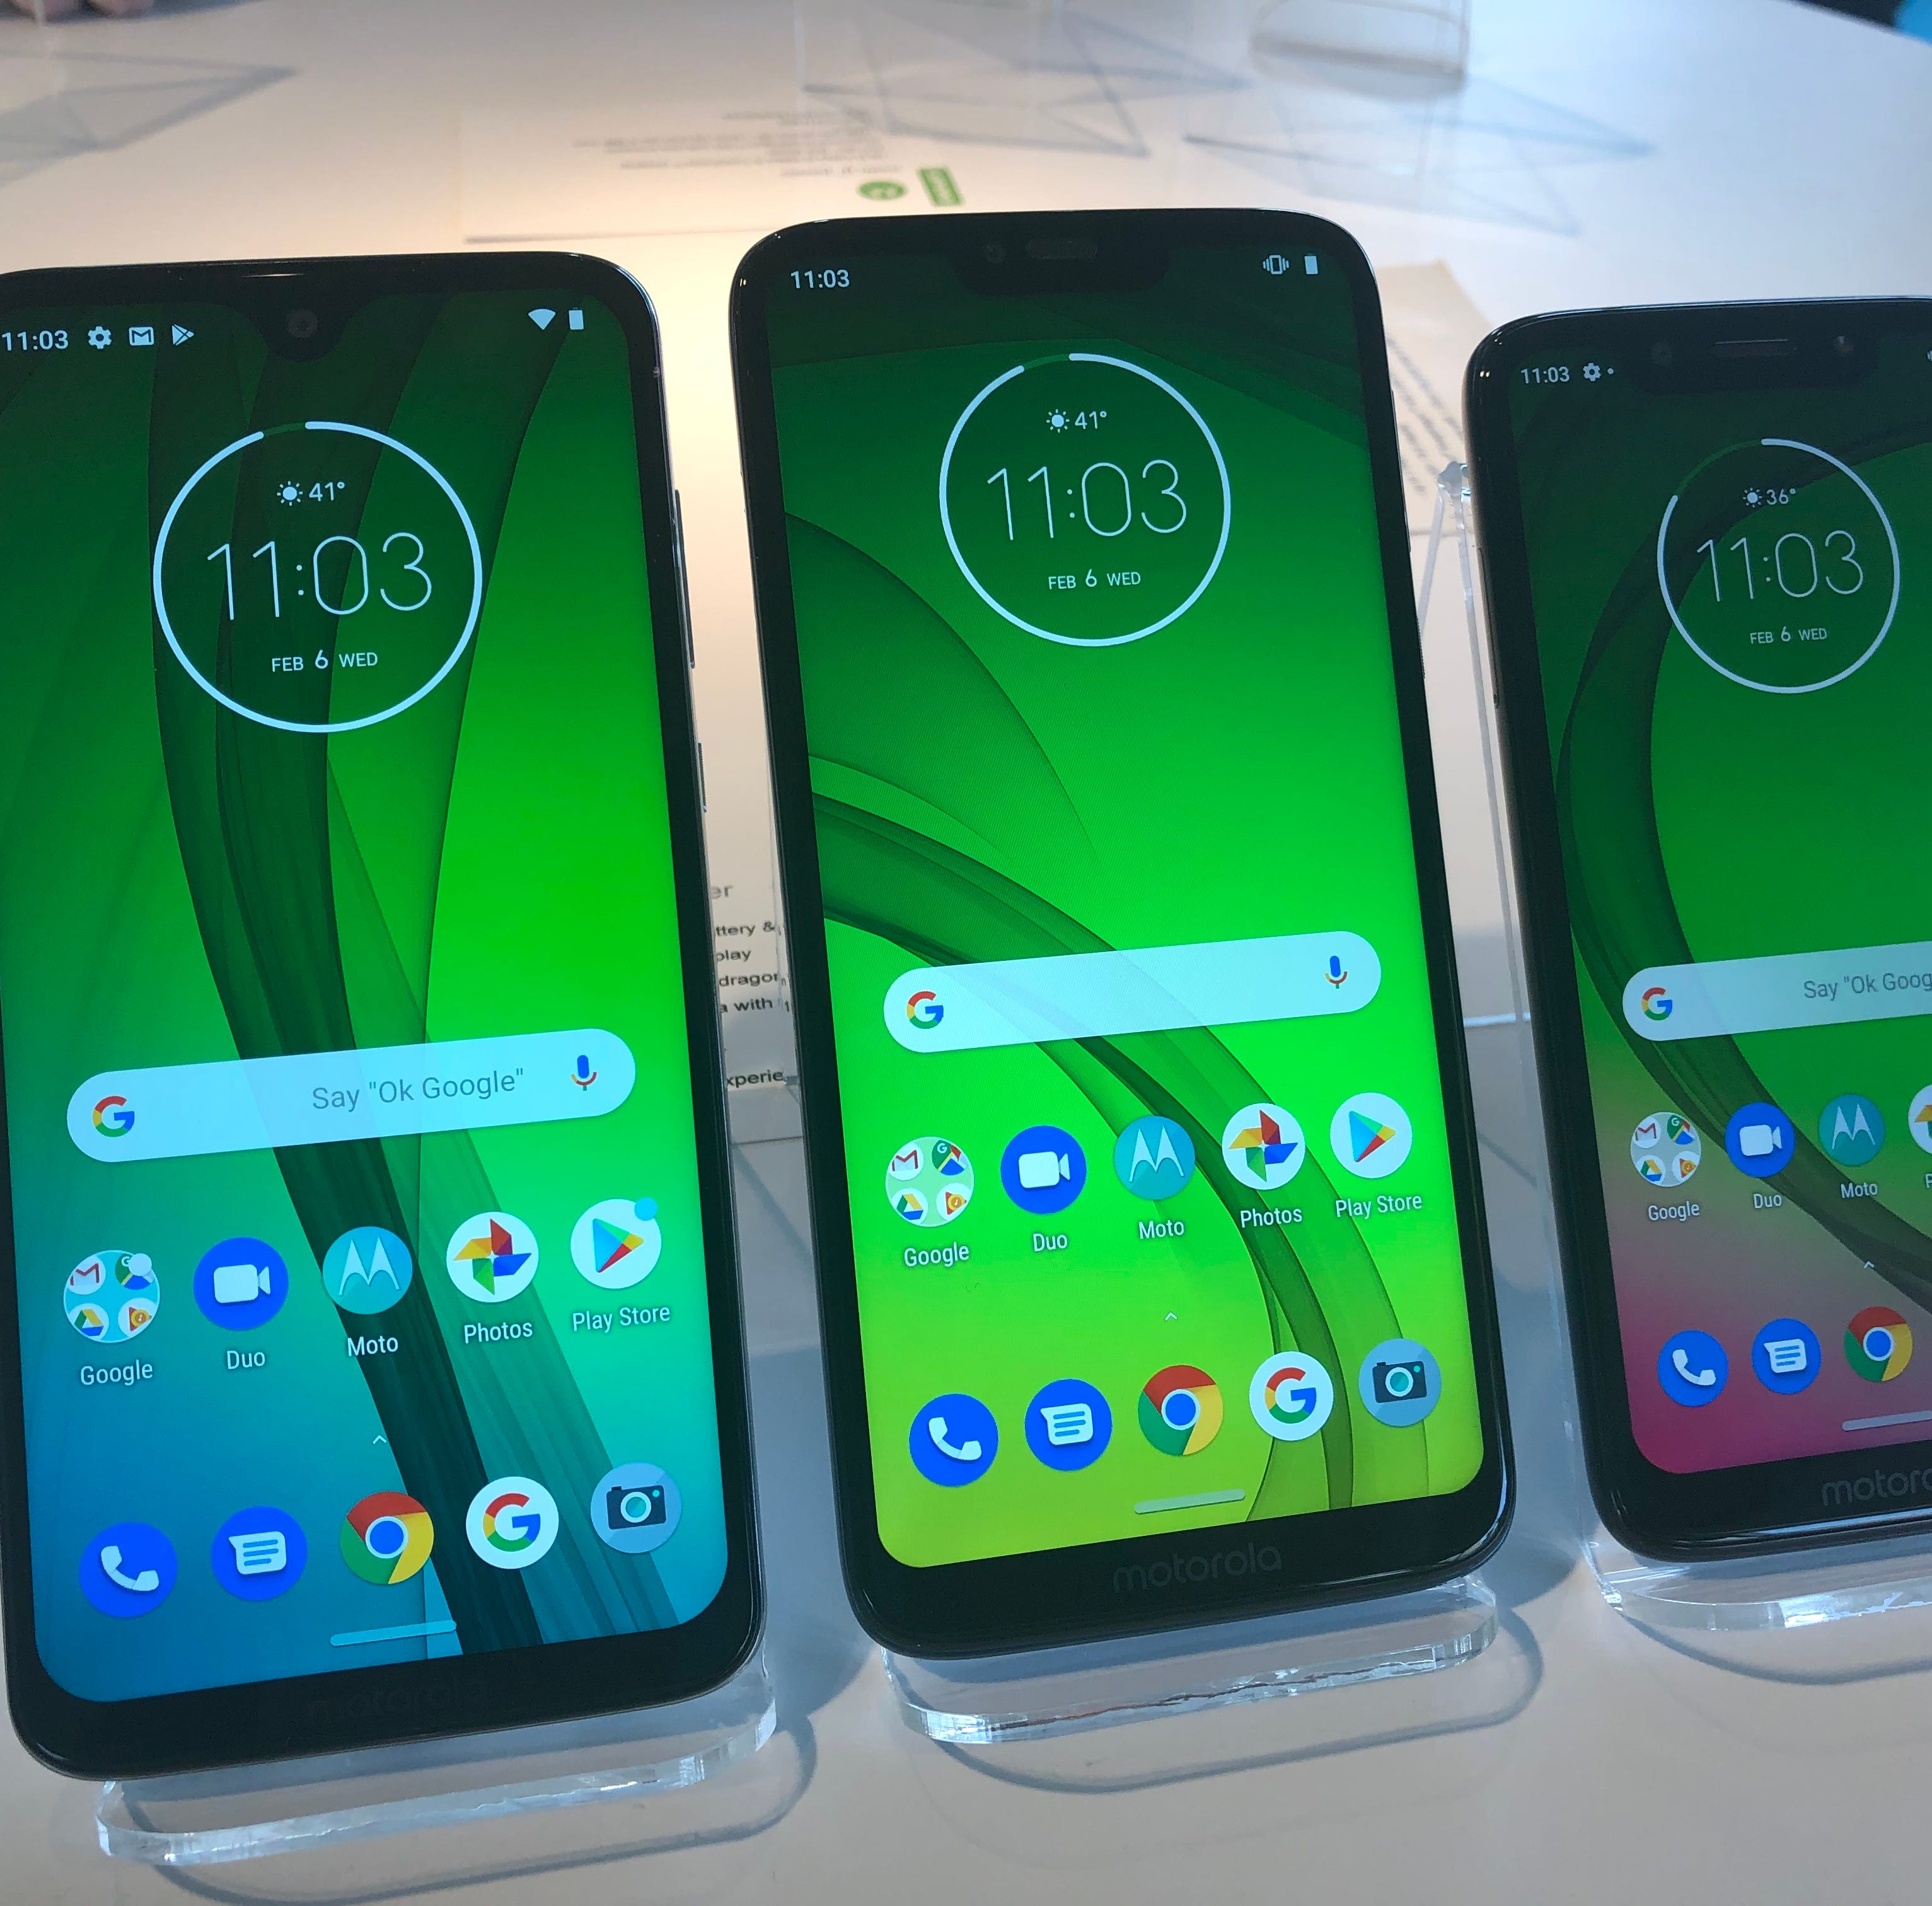 The Moto G7, G7 Power and G7 Play.